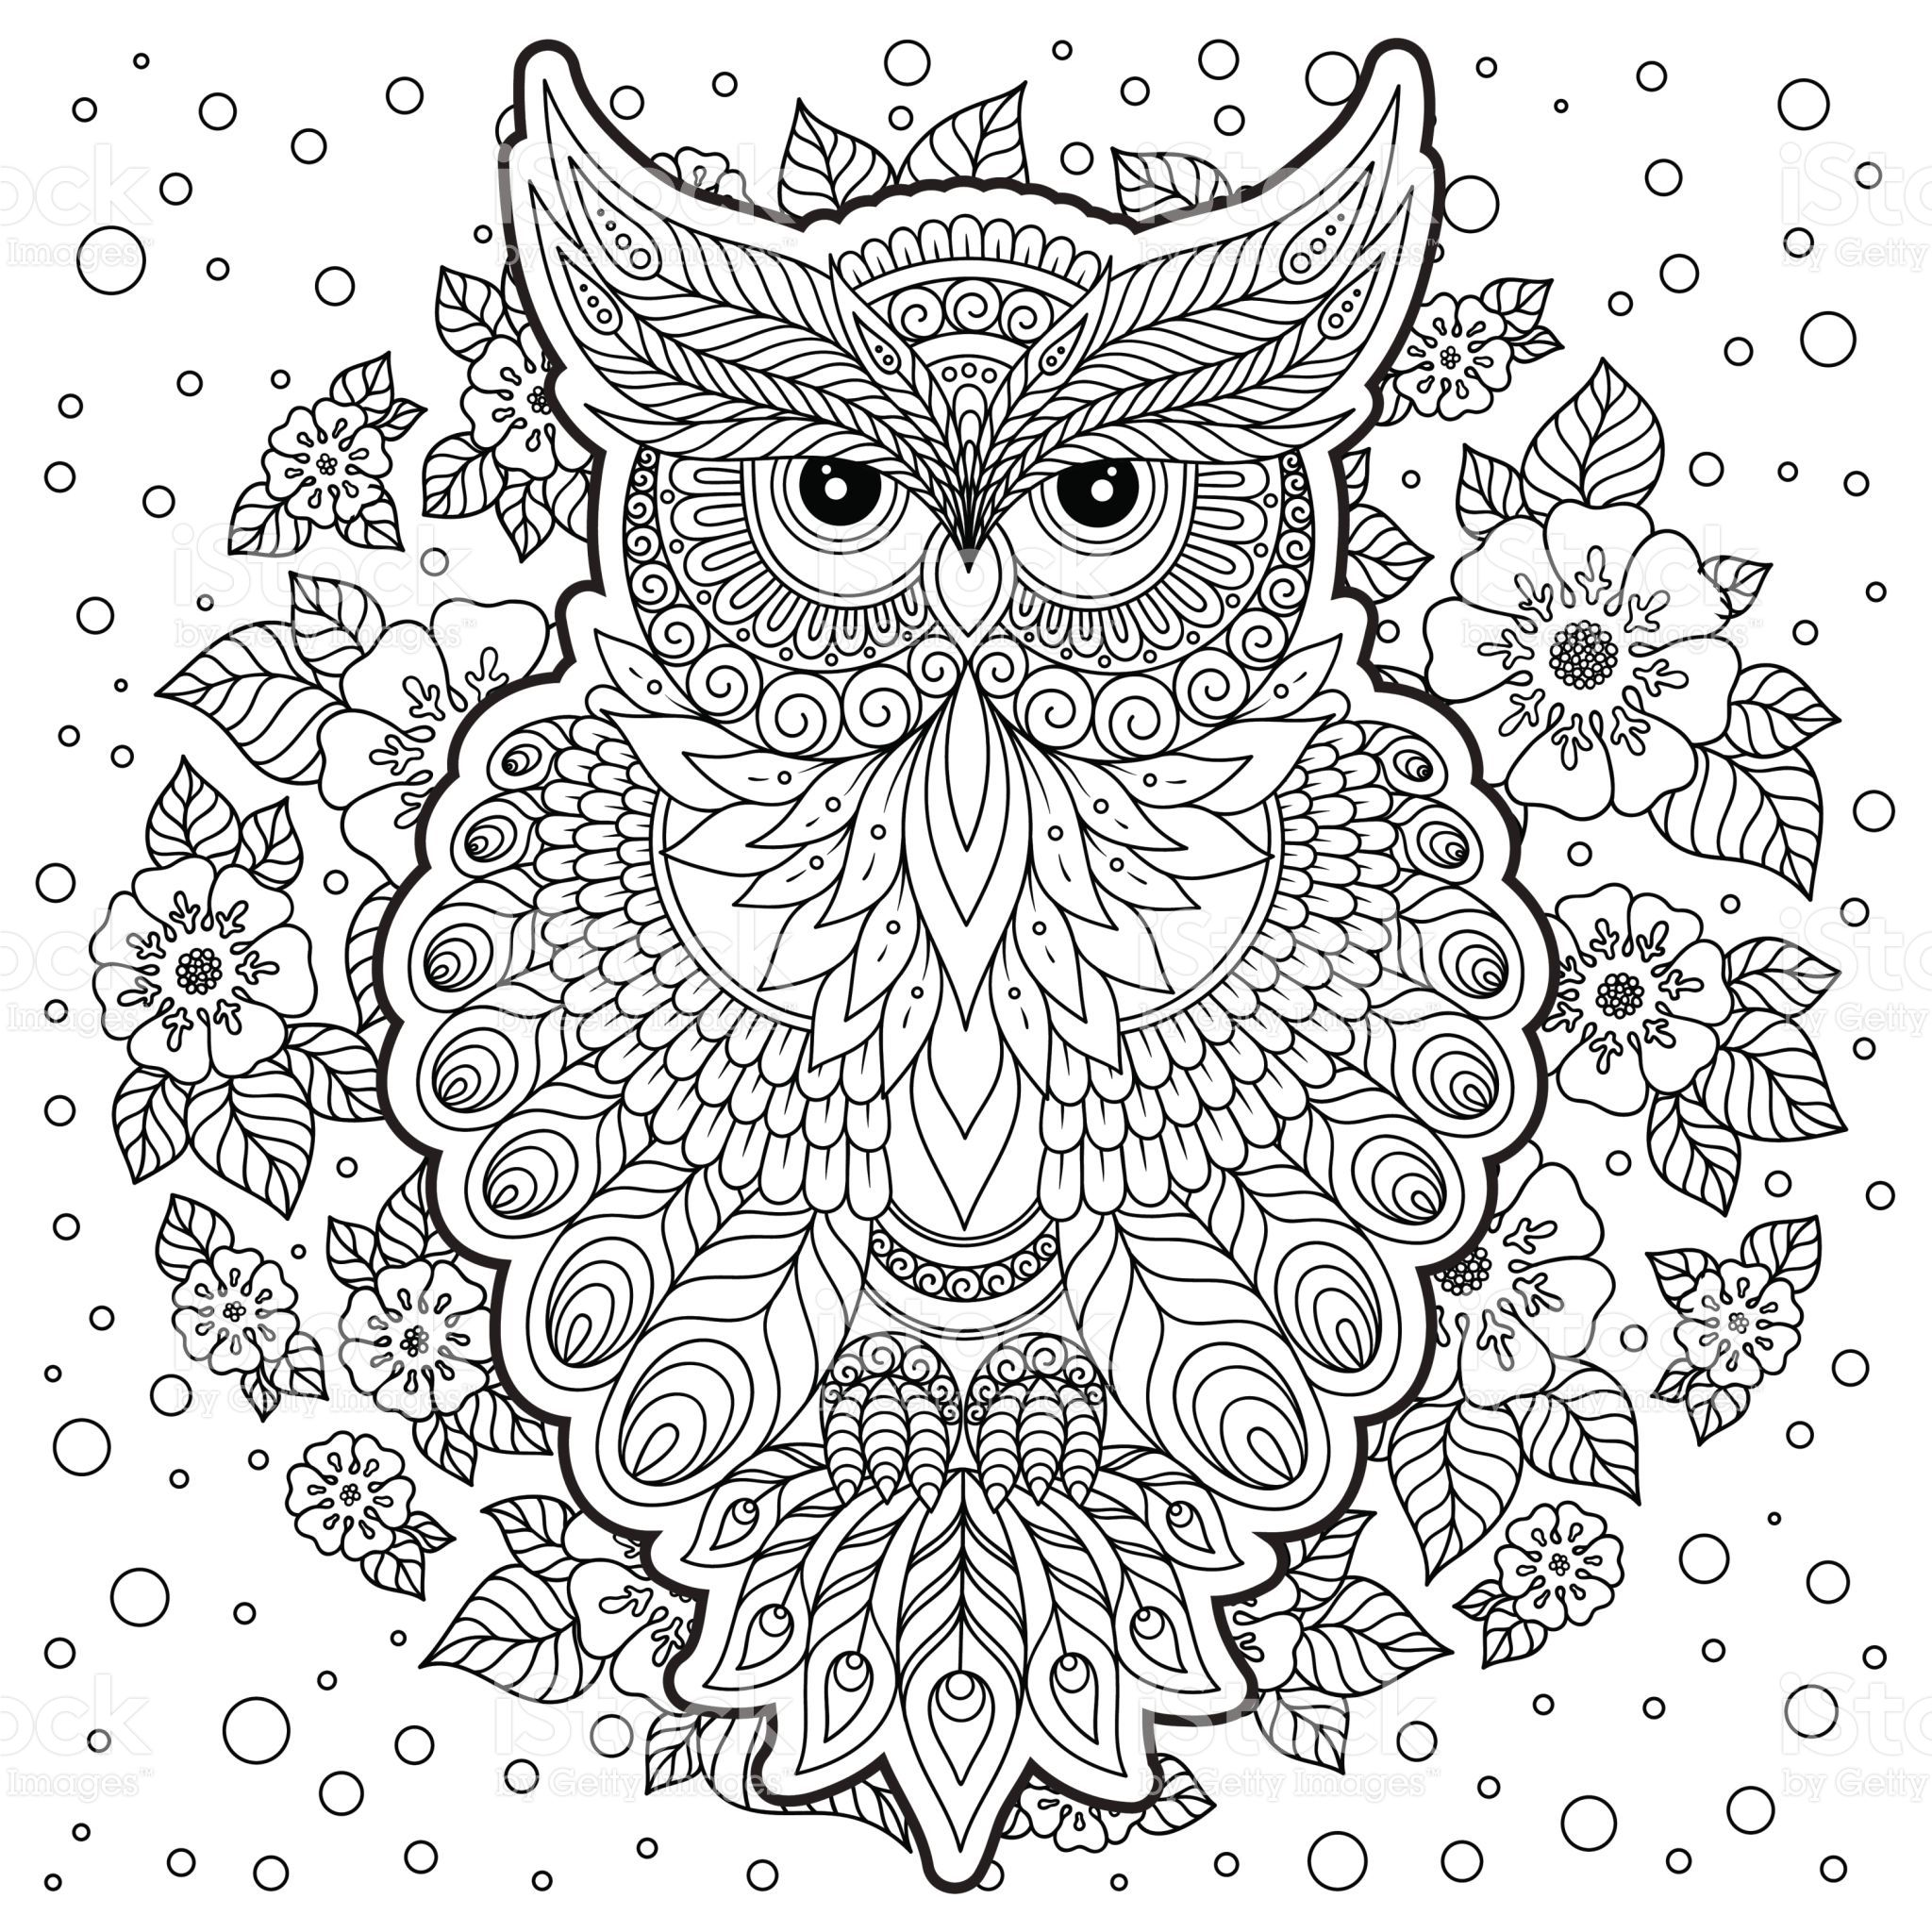 coloring page with owl and floral frame vector